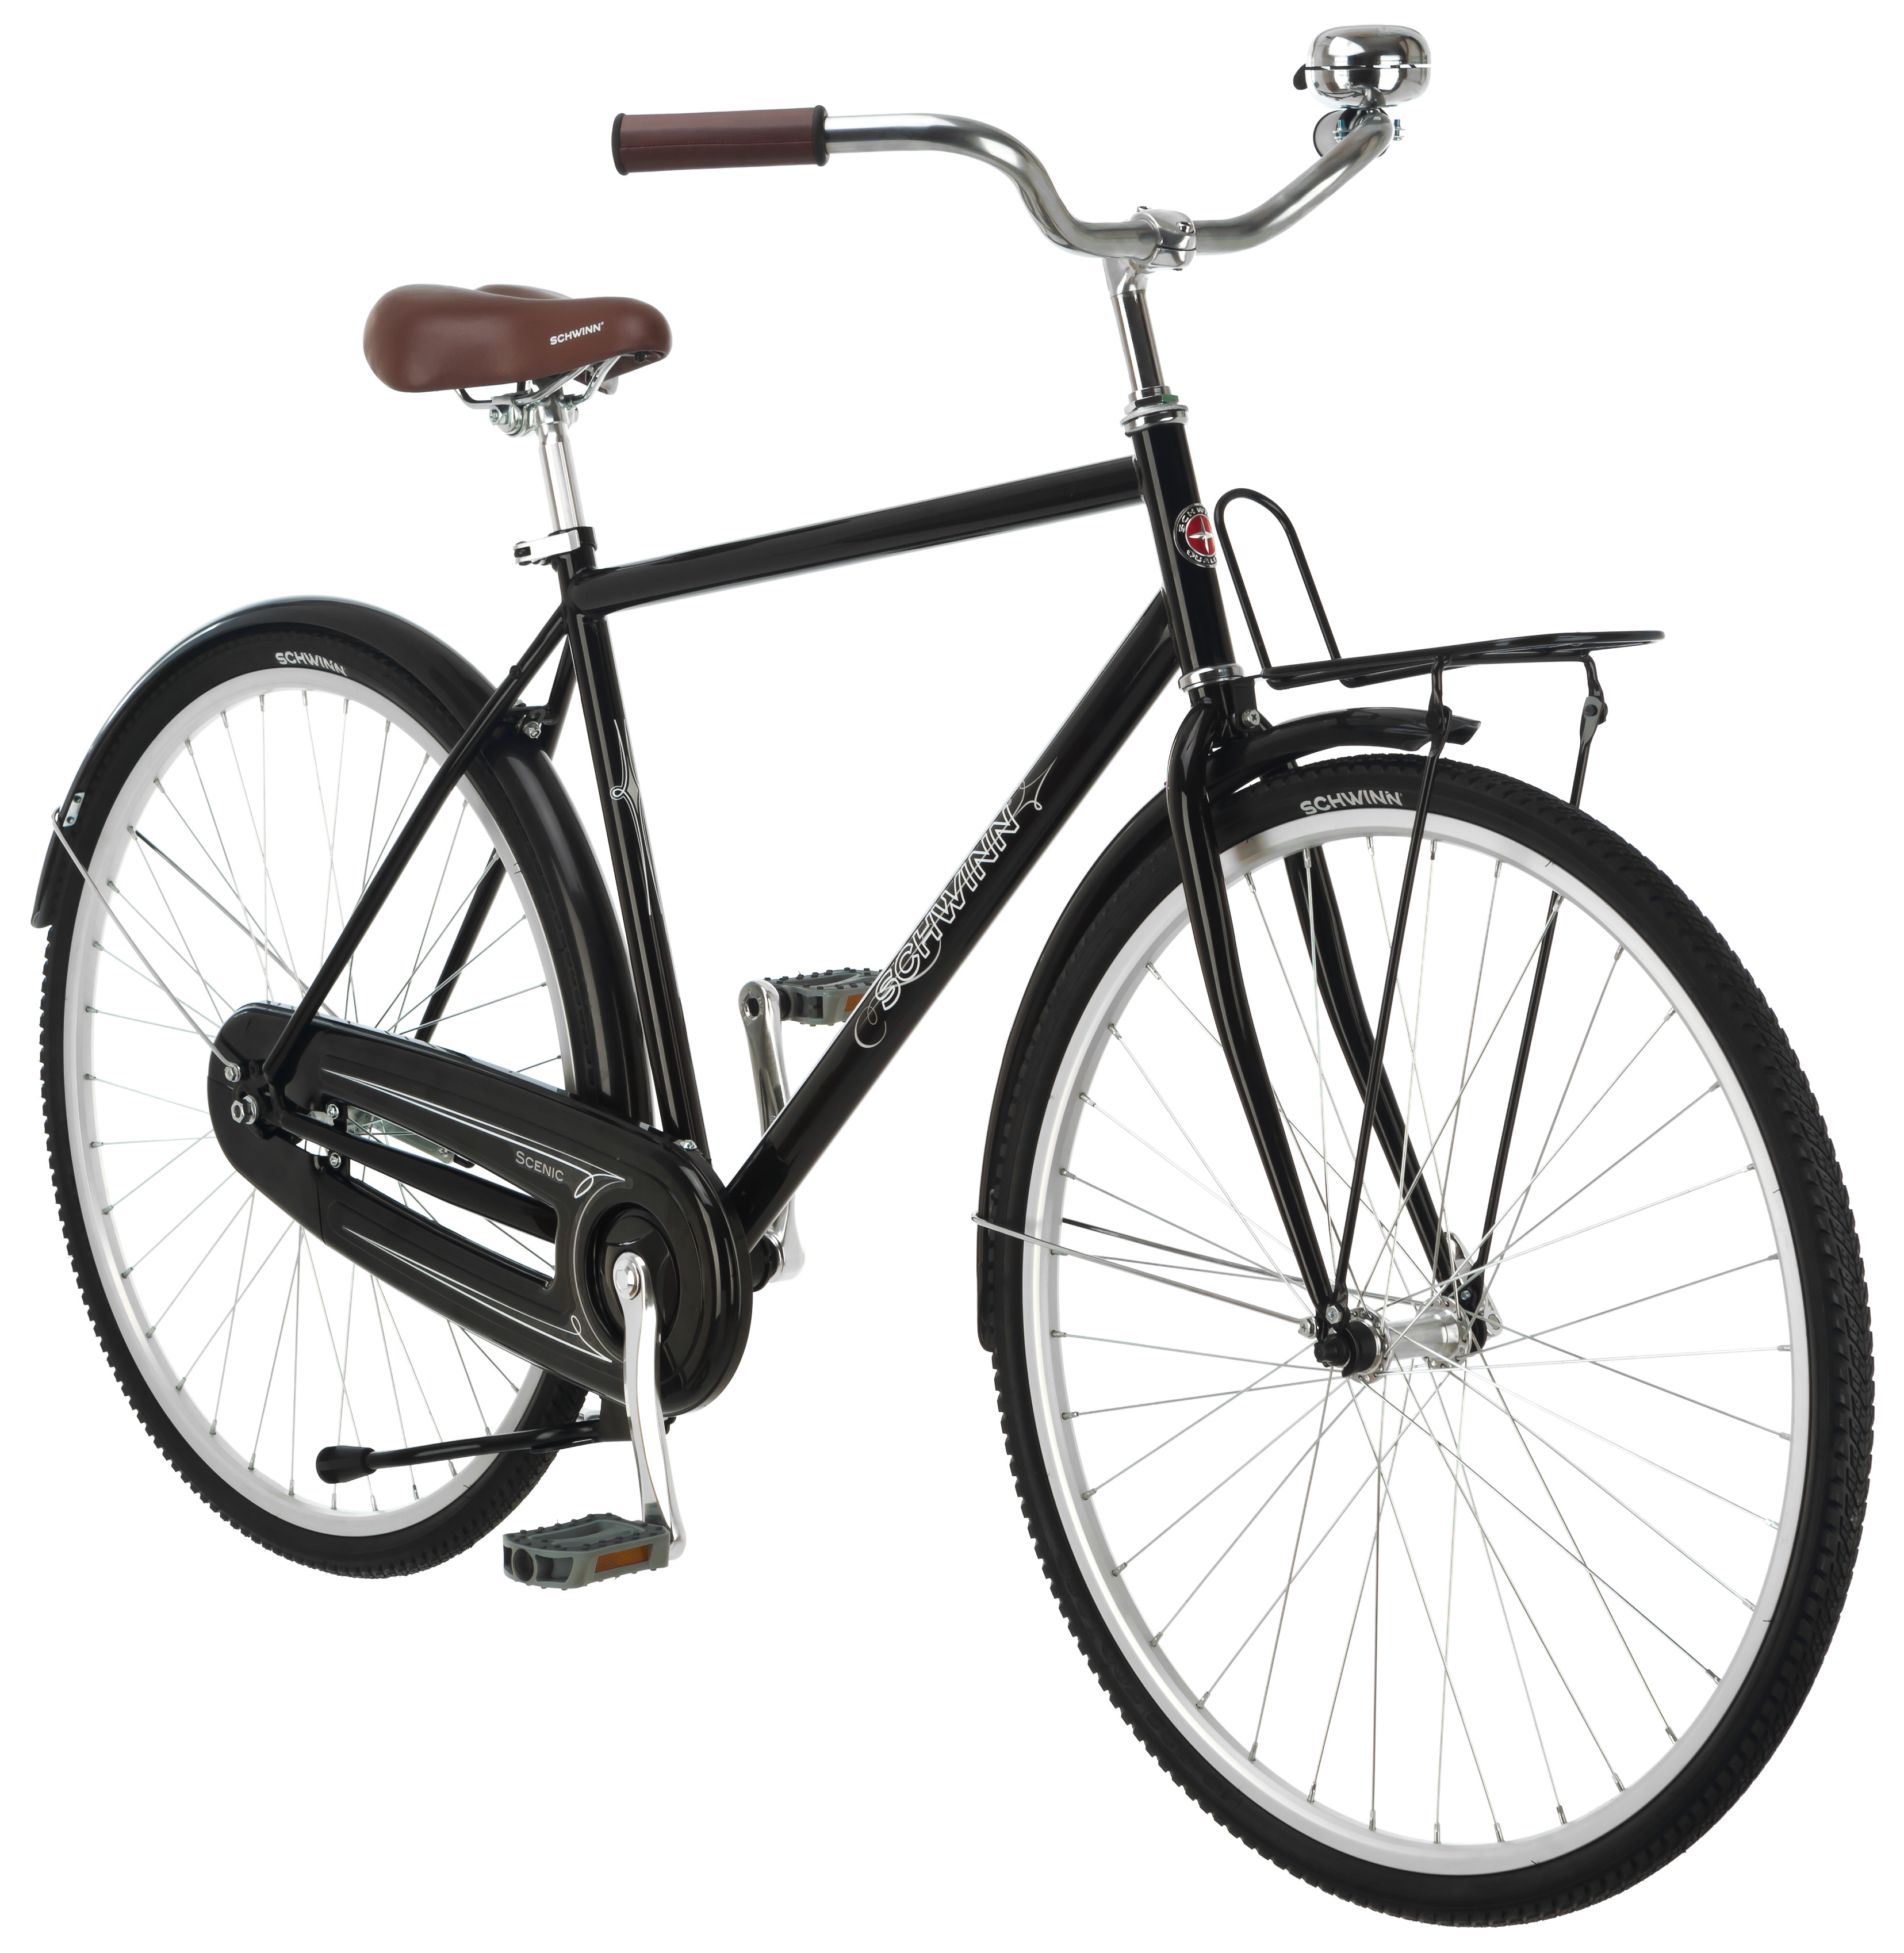 Schwinn 700c Men's Scenic Dutch Cruiser Bike